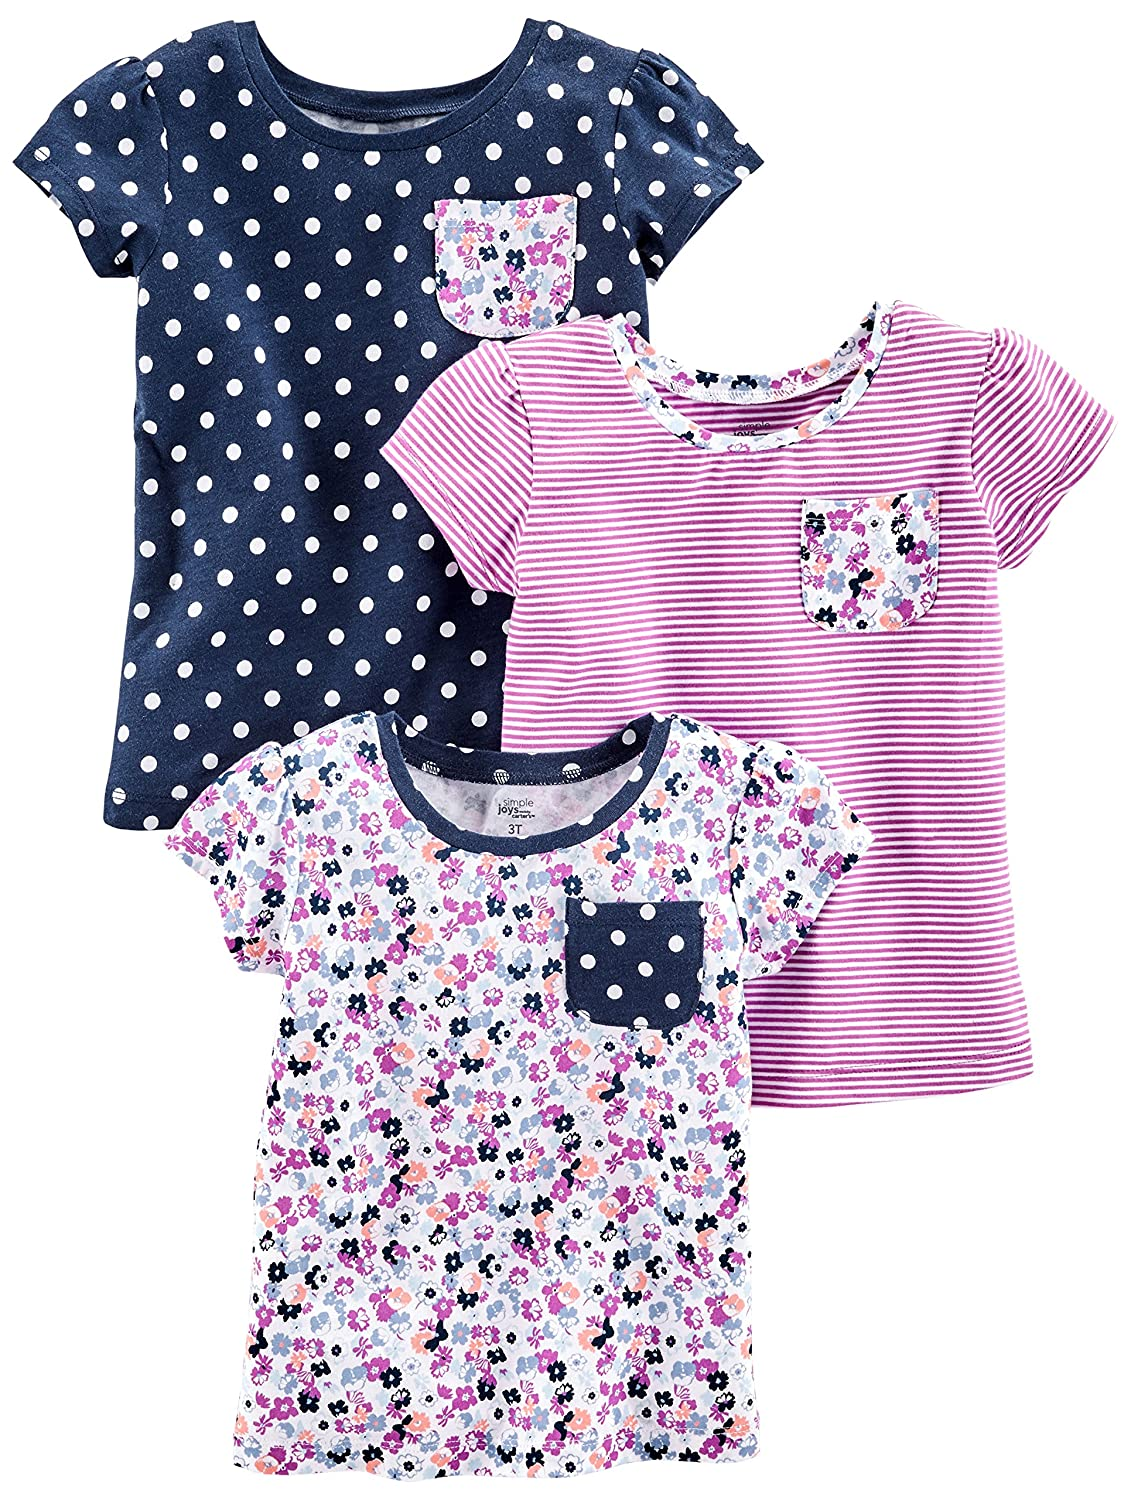 Simple Joys by Carter's Baby Girls' Toddler 3-Pack Short-Sleeve Shirts and Tops 3PKTEEFASH